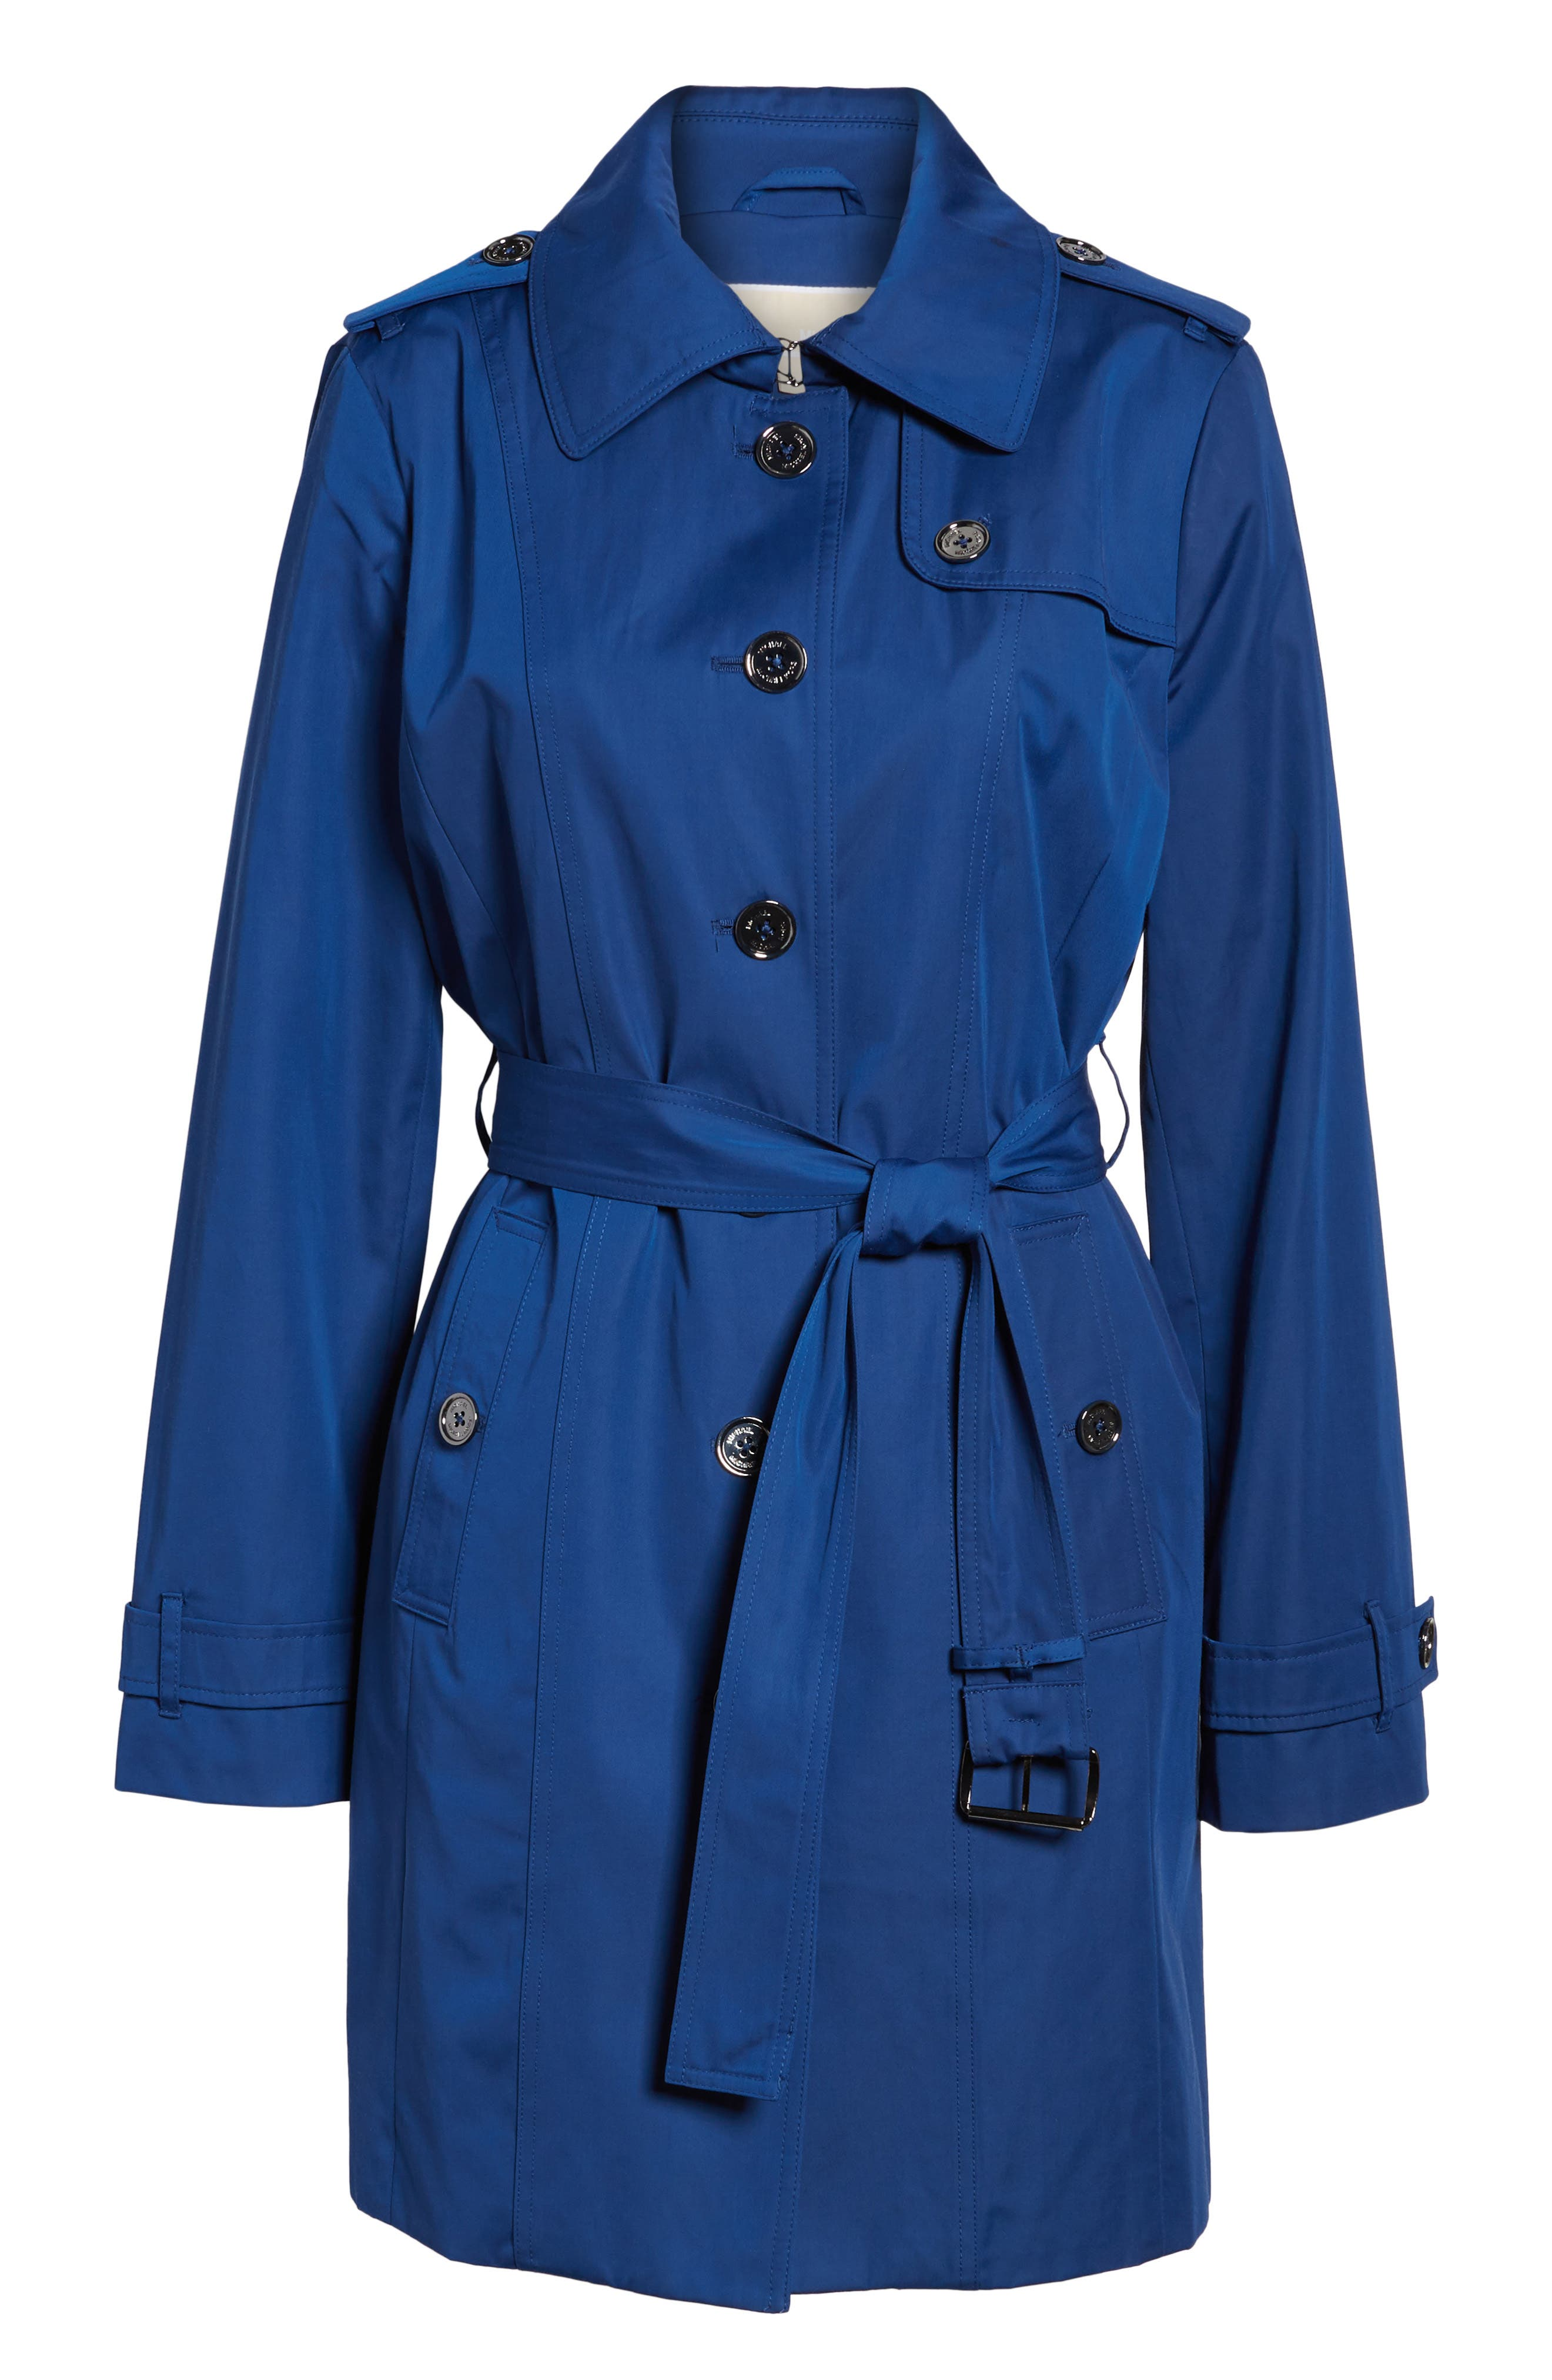 Core Trench Coat with Removable Hood & Liner,                             Alternate thumbnail 5, color,                             431